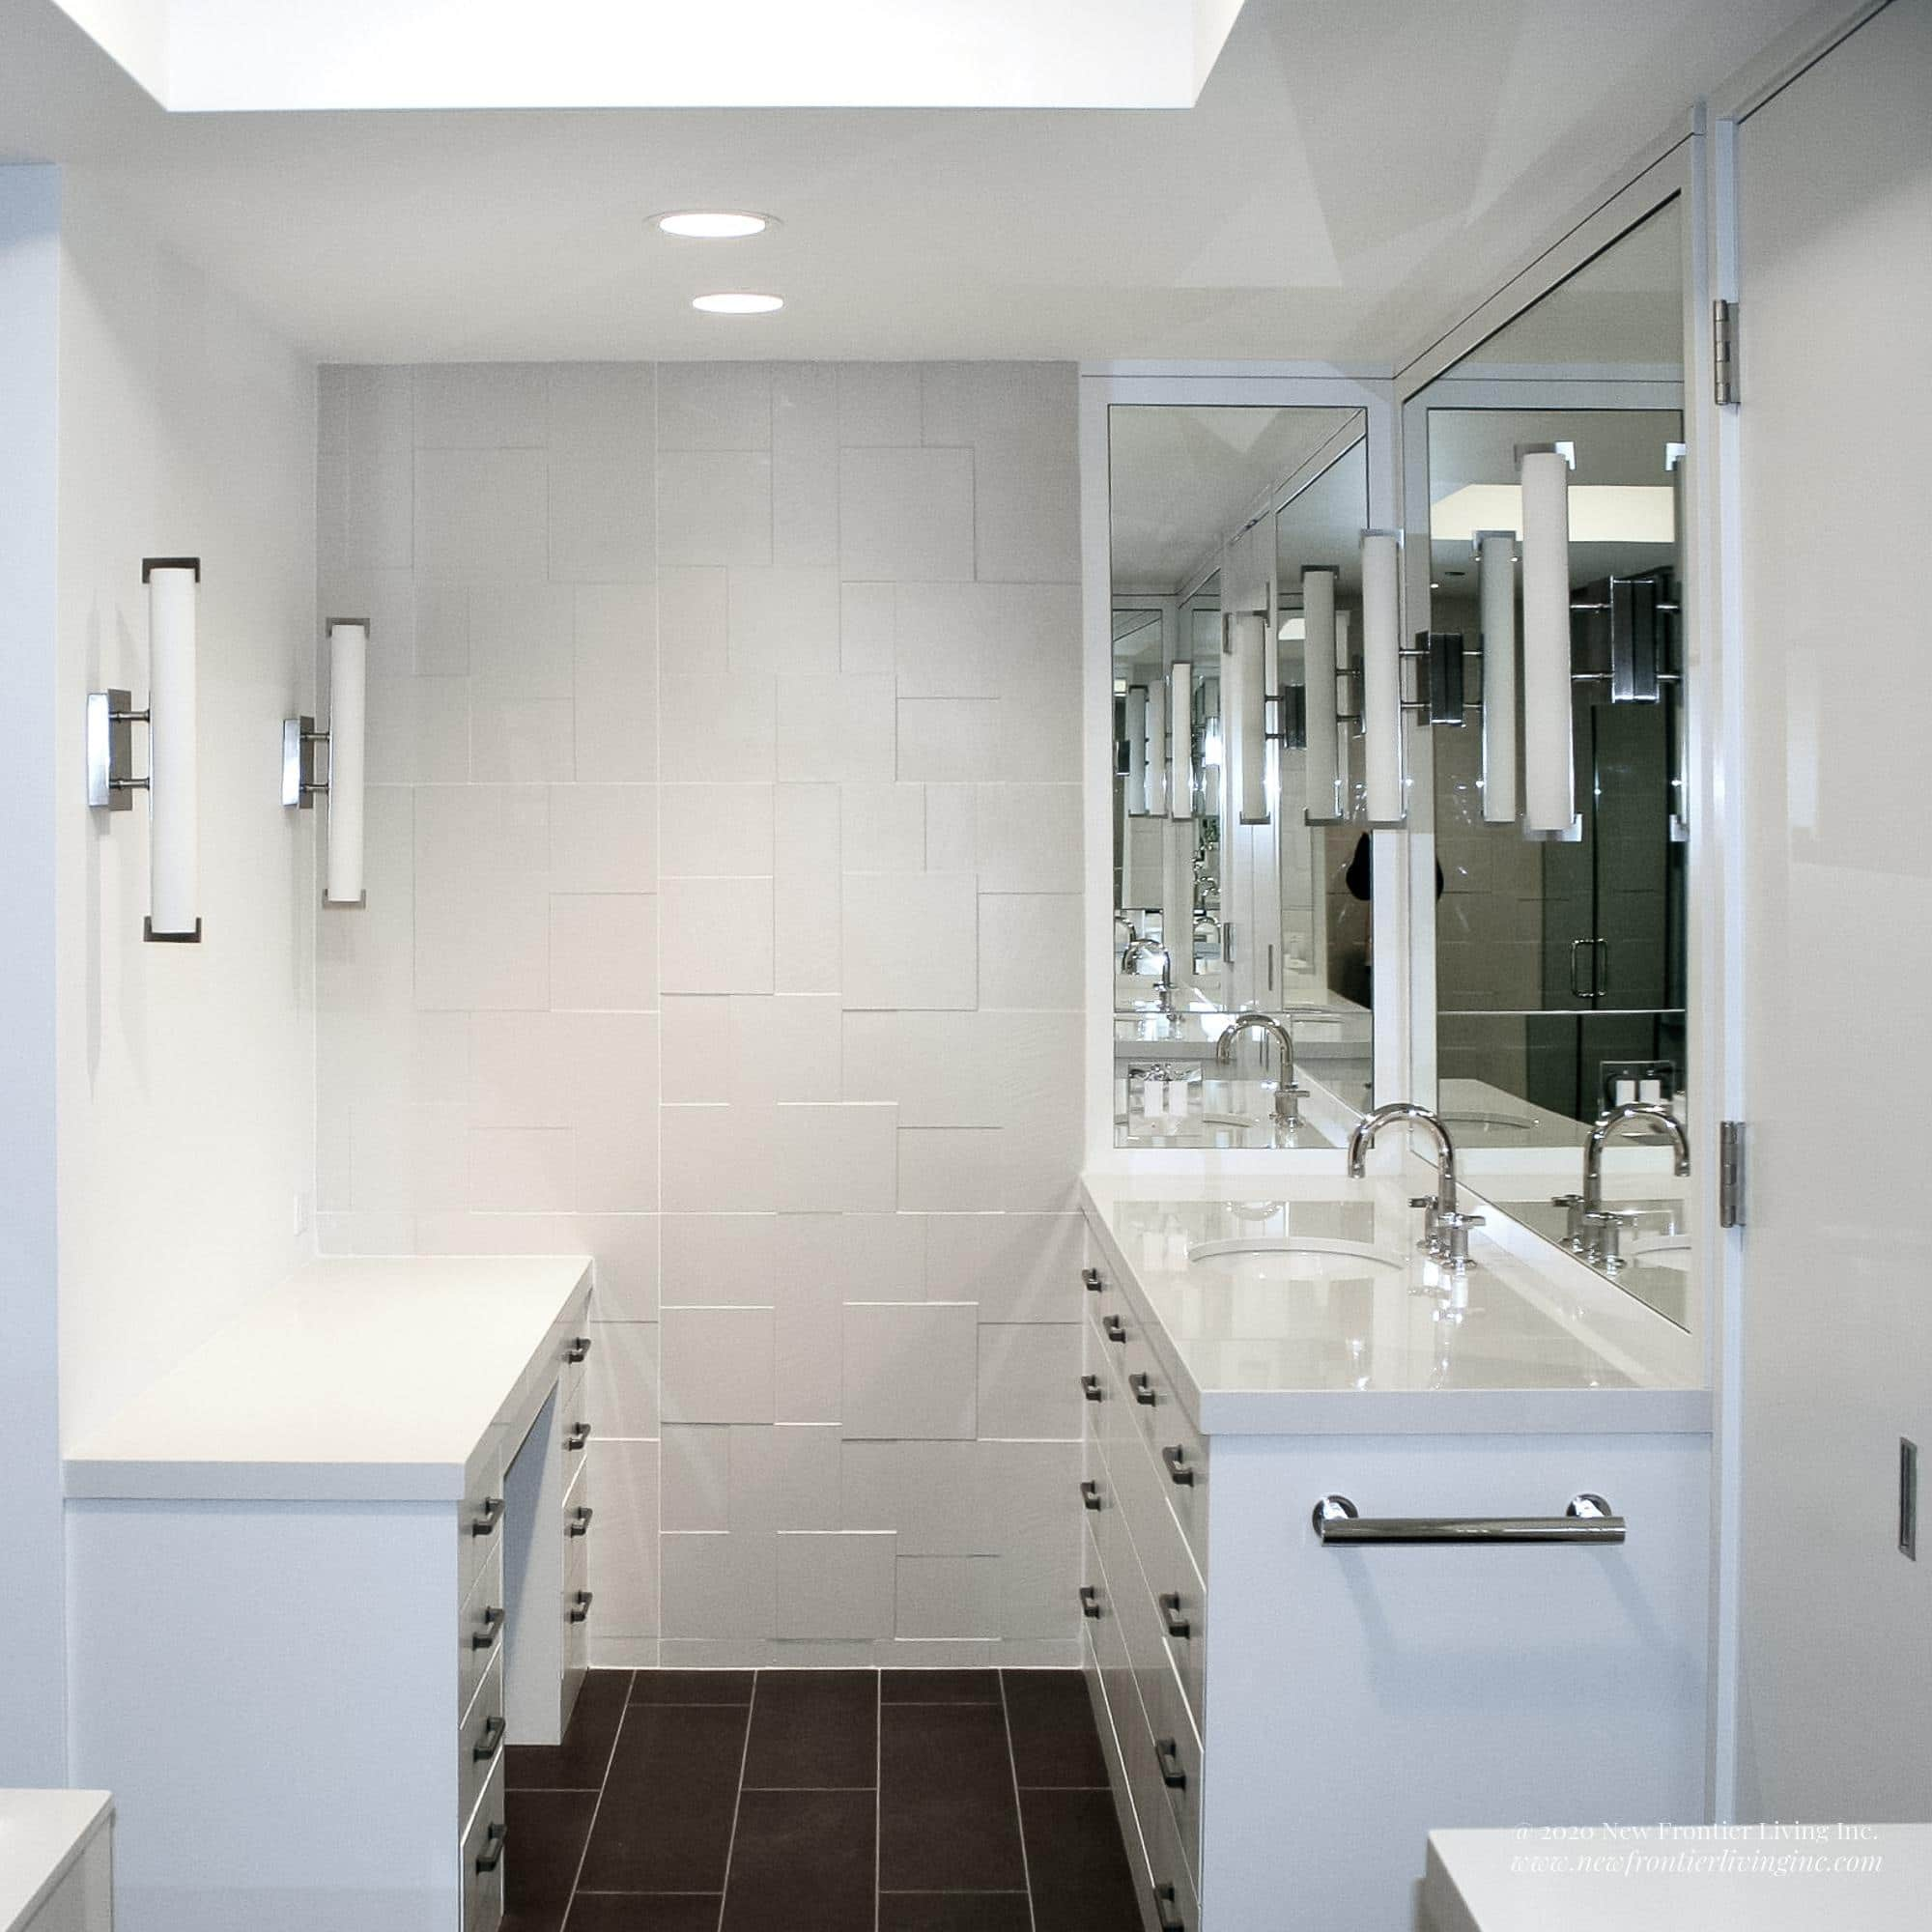 White bathroom installed by NFL Inc. square pic two mirrors and vanities shown